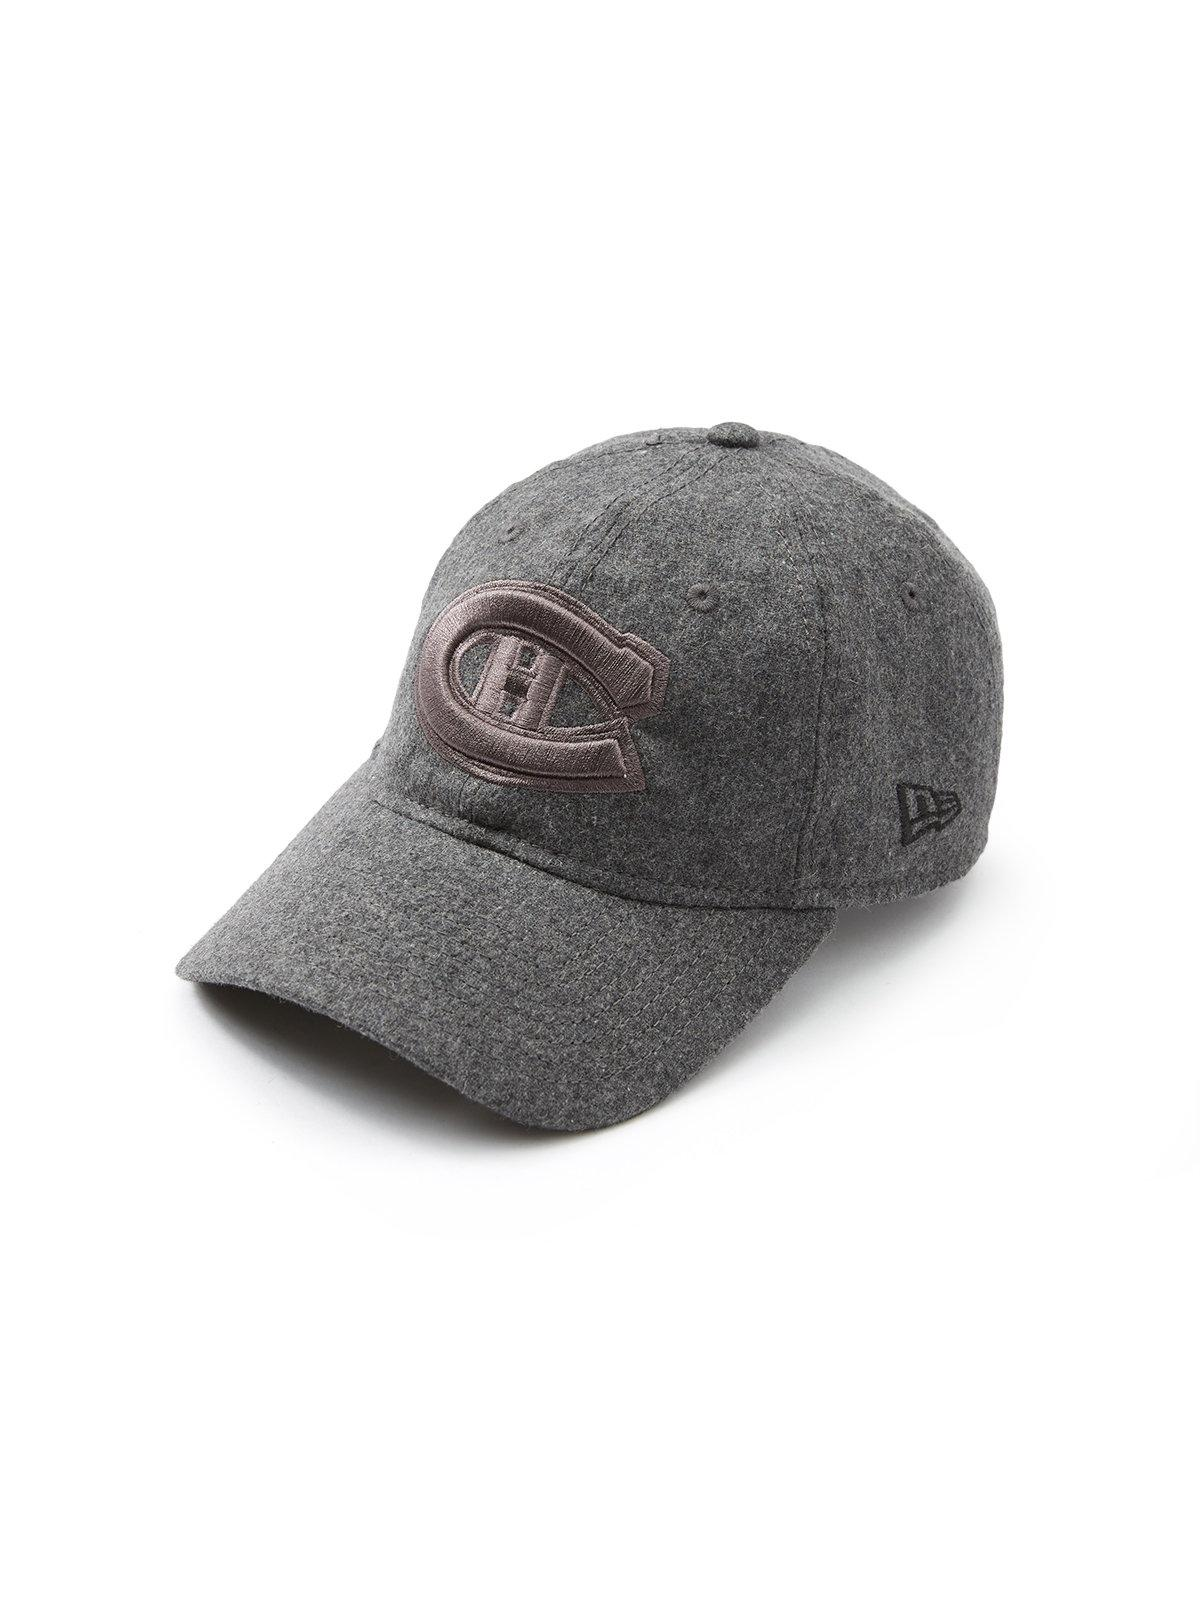 official photos a9ffa 1858b Frank And Oak Montreal Canadiens Special Edition Series Cap In Grey ...